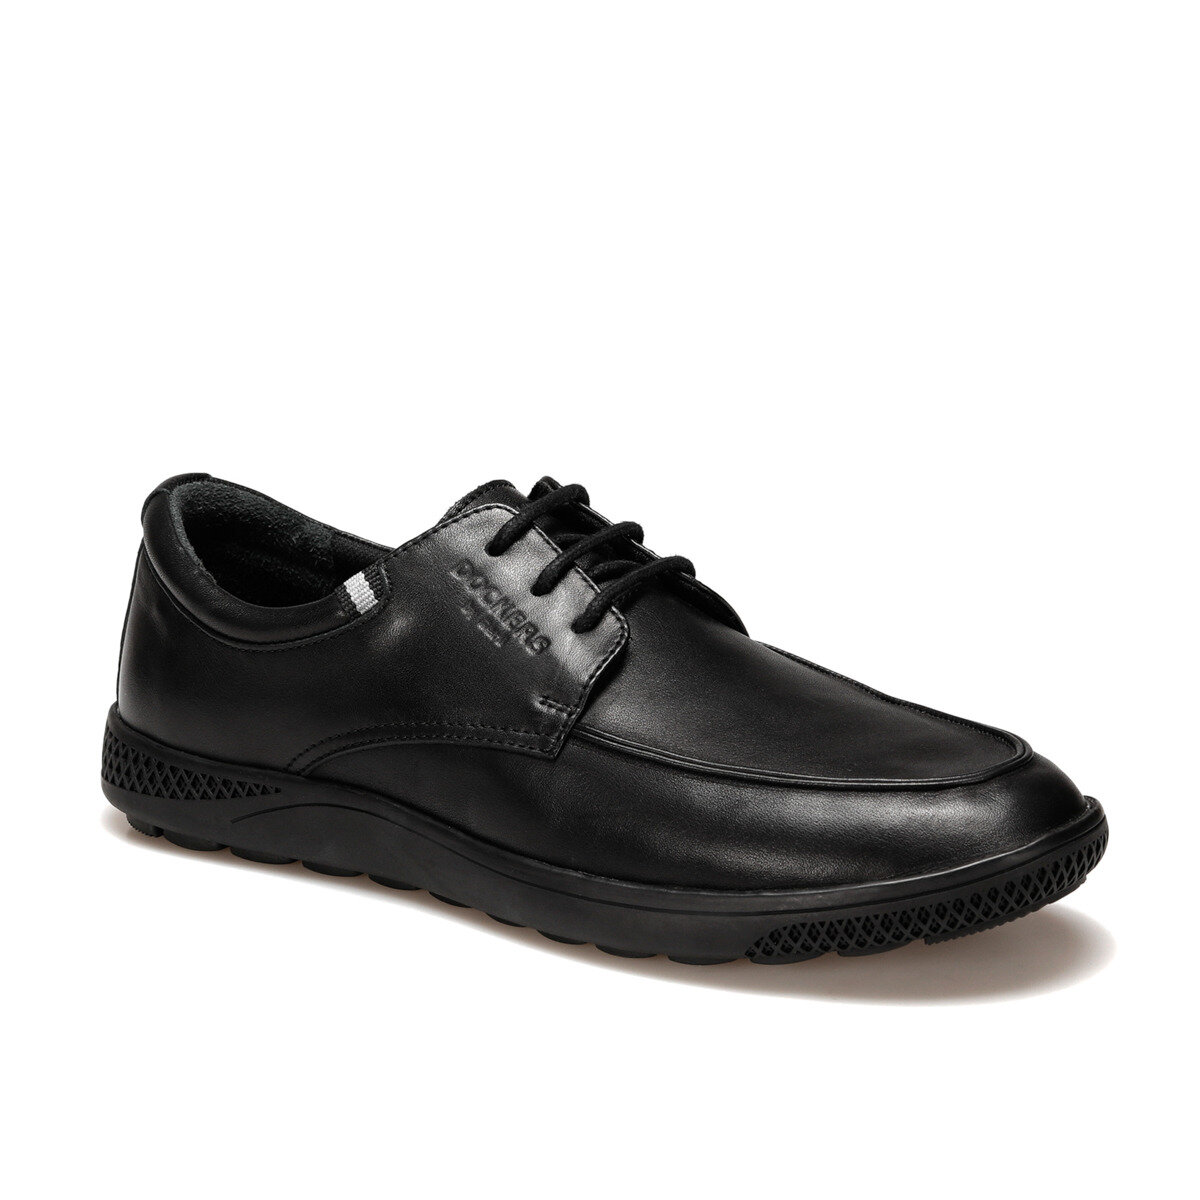 FLO 228280 Black Men 'S Comfort Shoes By Dockers The Gerle